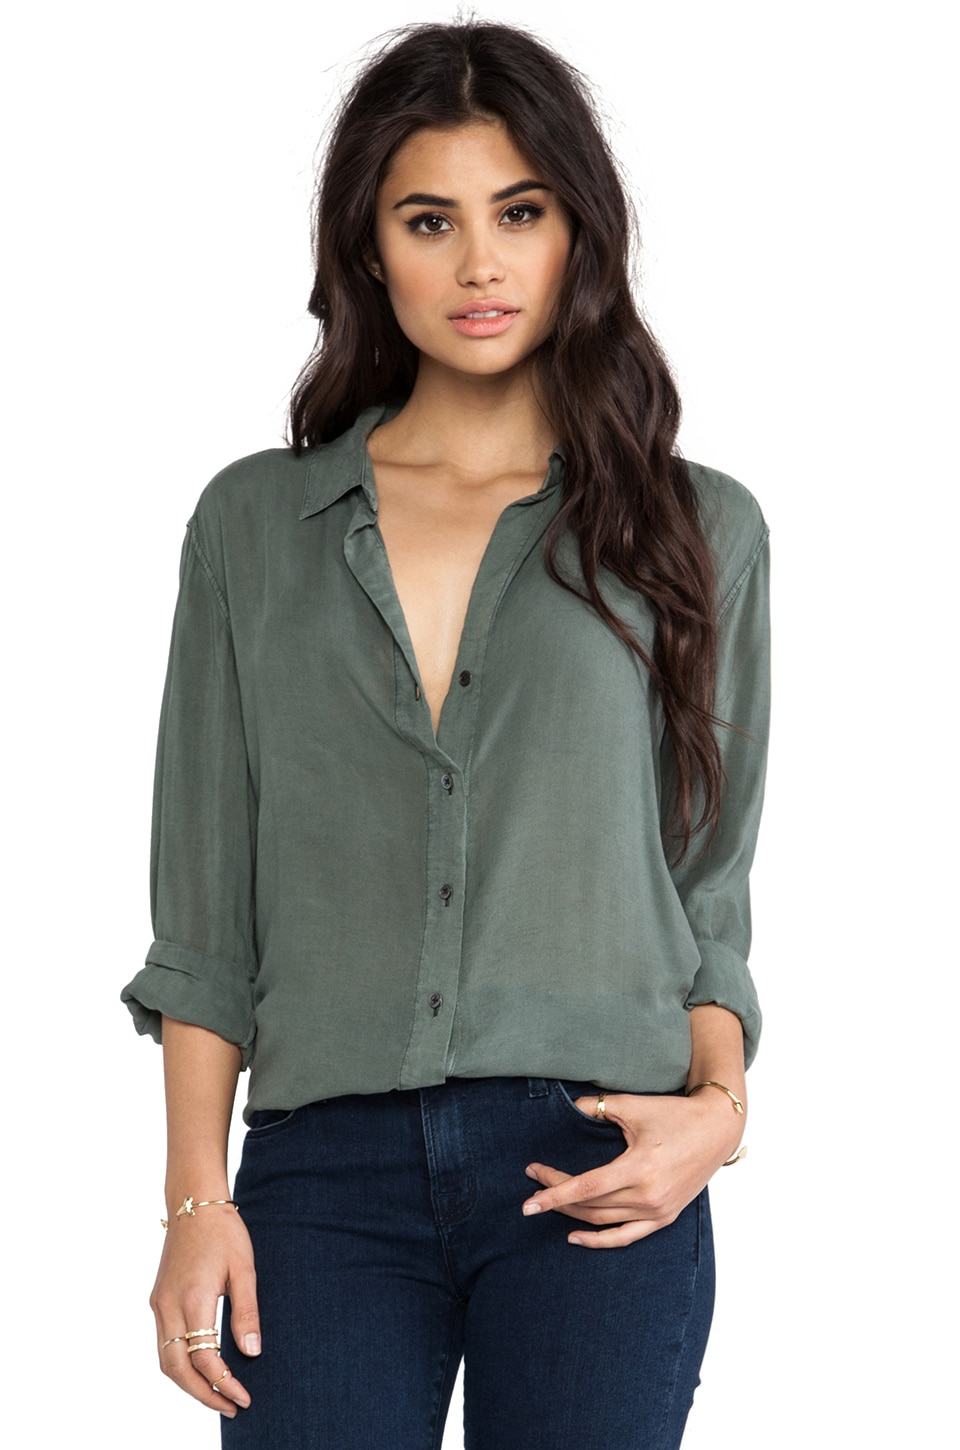 James Perse Relaxed Shirt in Forest Green